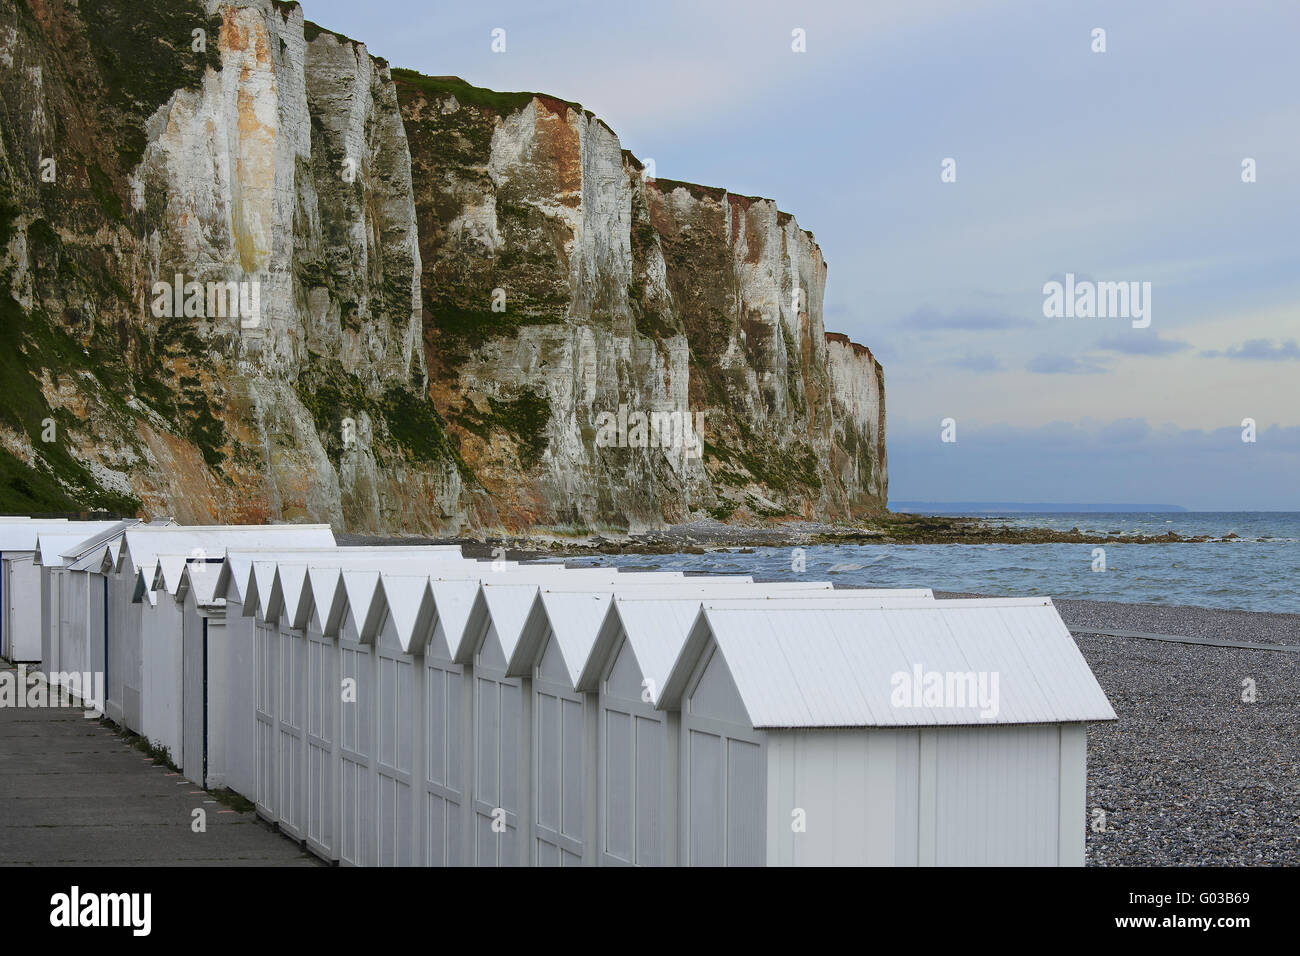 cliffs on the beach, Le Treport, Normandy, France - Stock Image